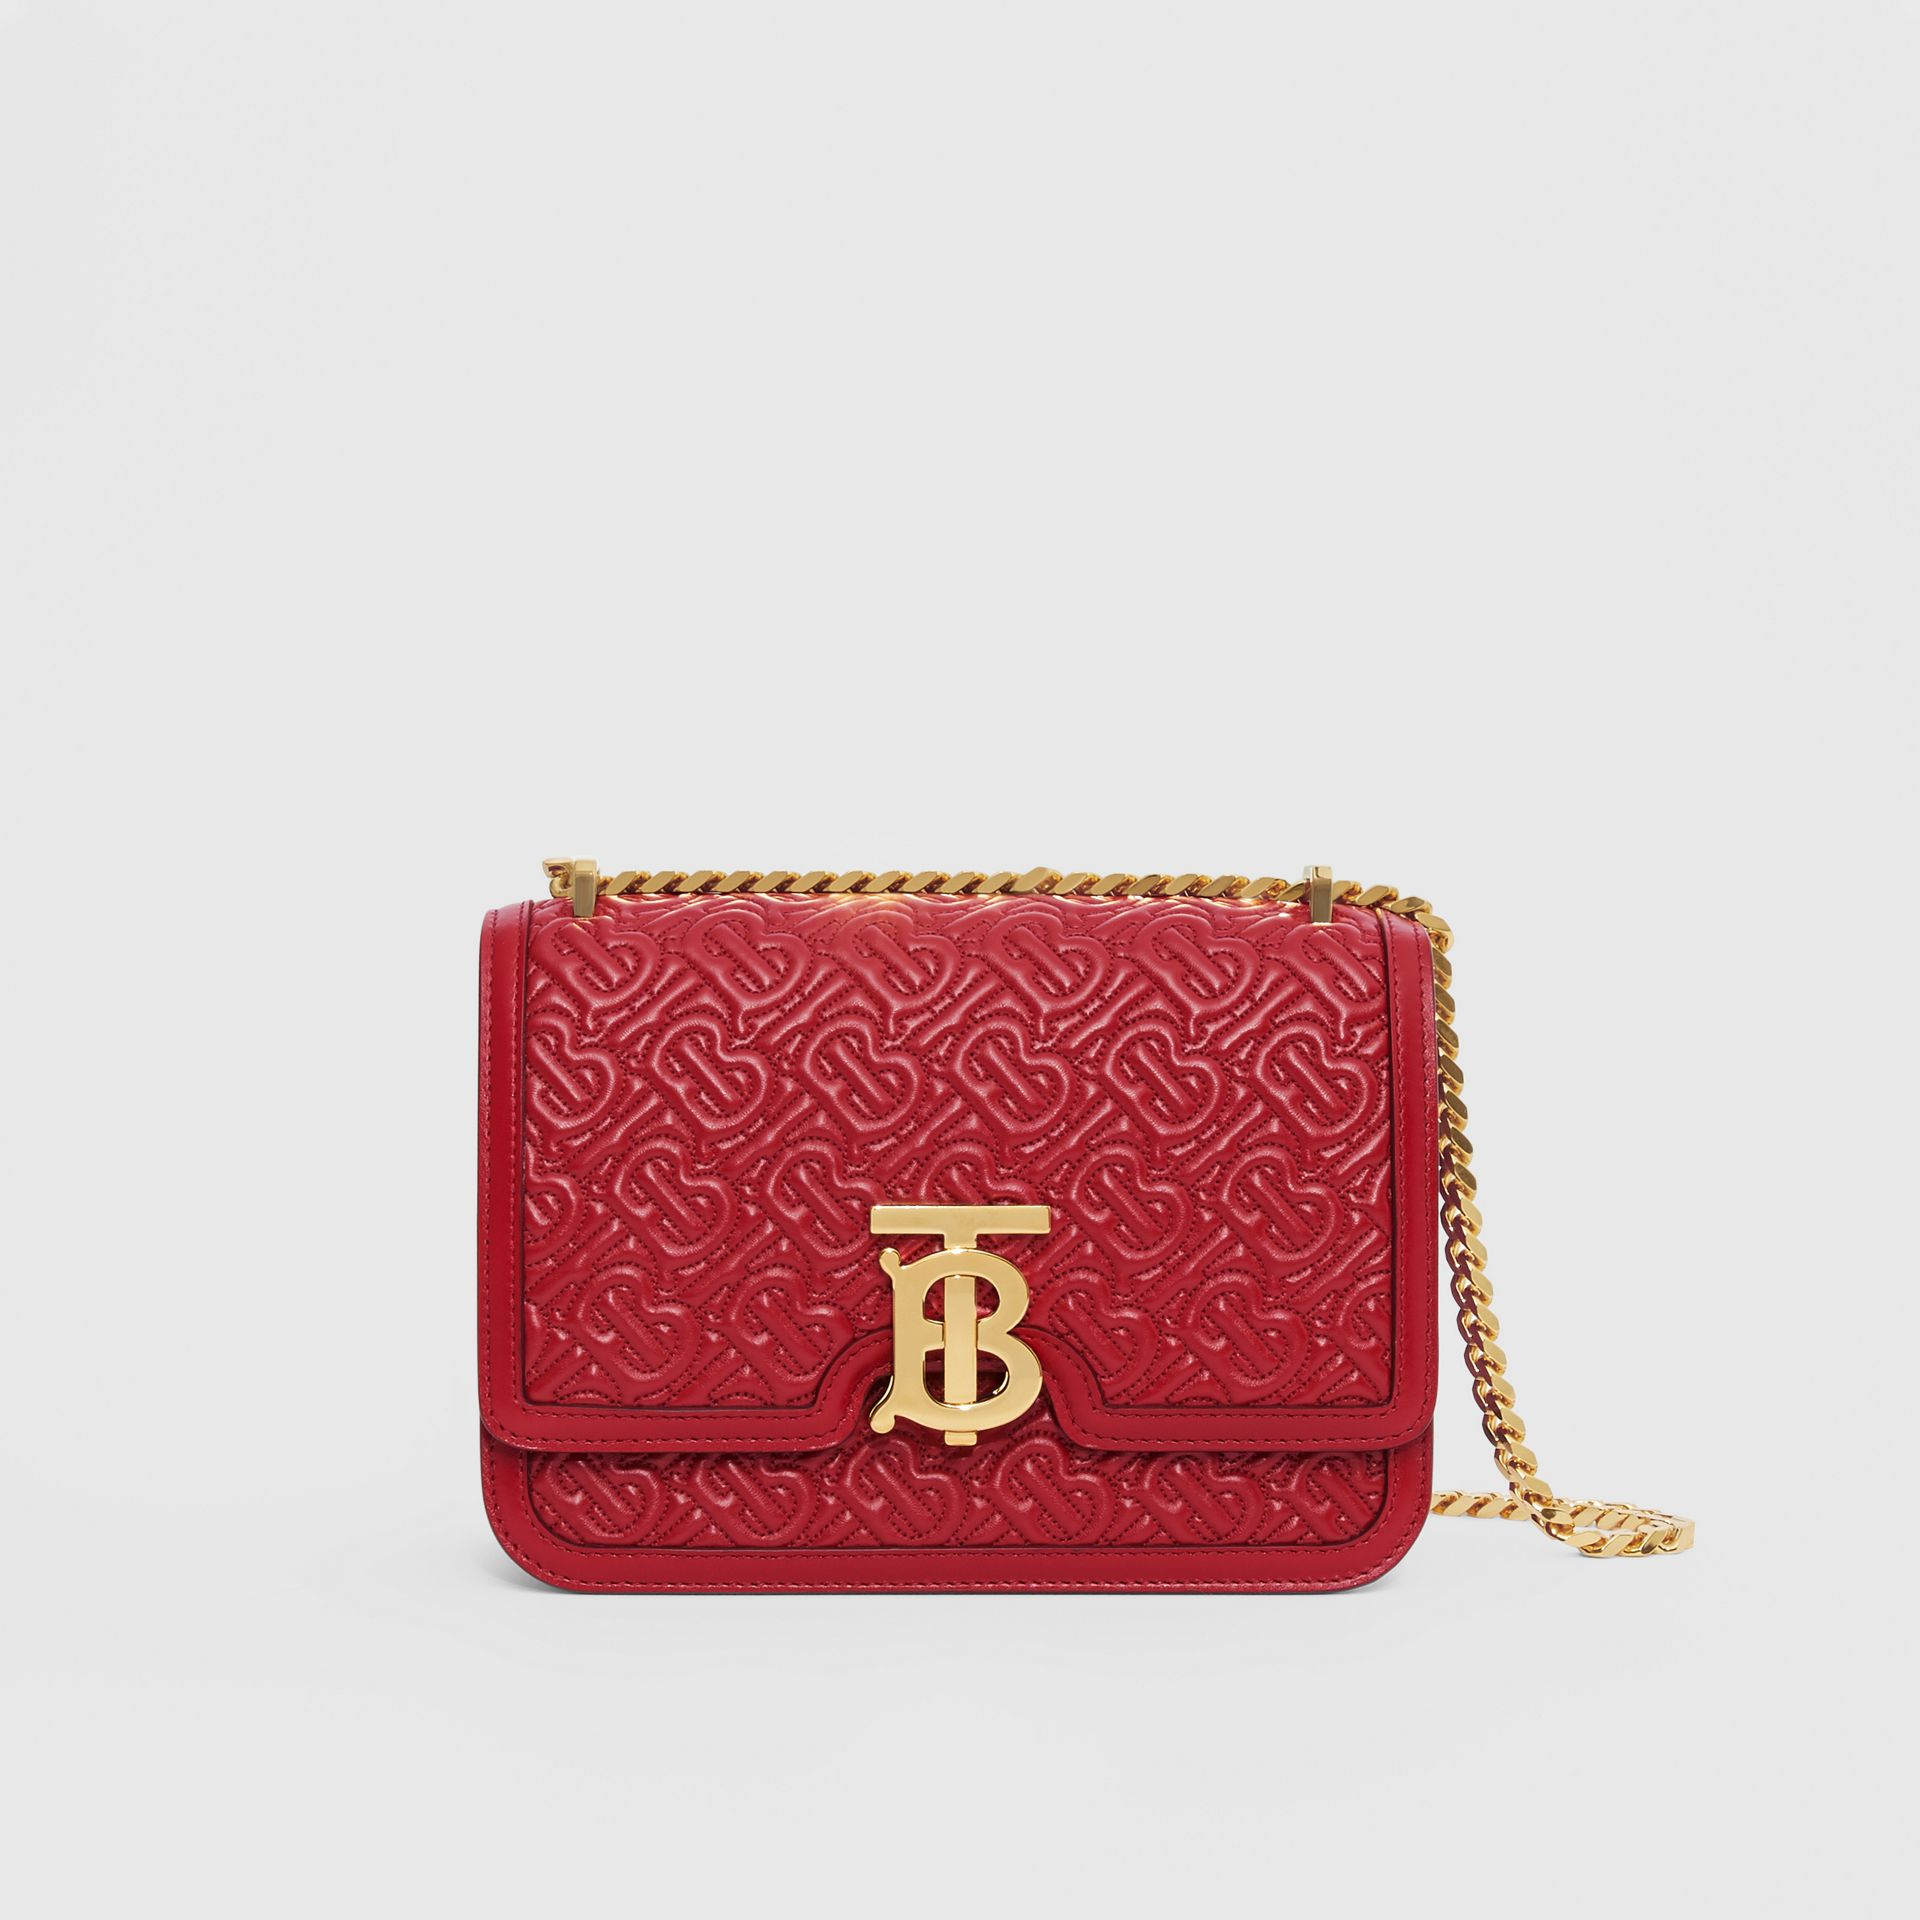 Small Quilted Monogram Lambskin TB Bag in Dark Carmine - Women | Burberry Hong Kong S.A.R. - gallery image 0